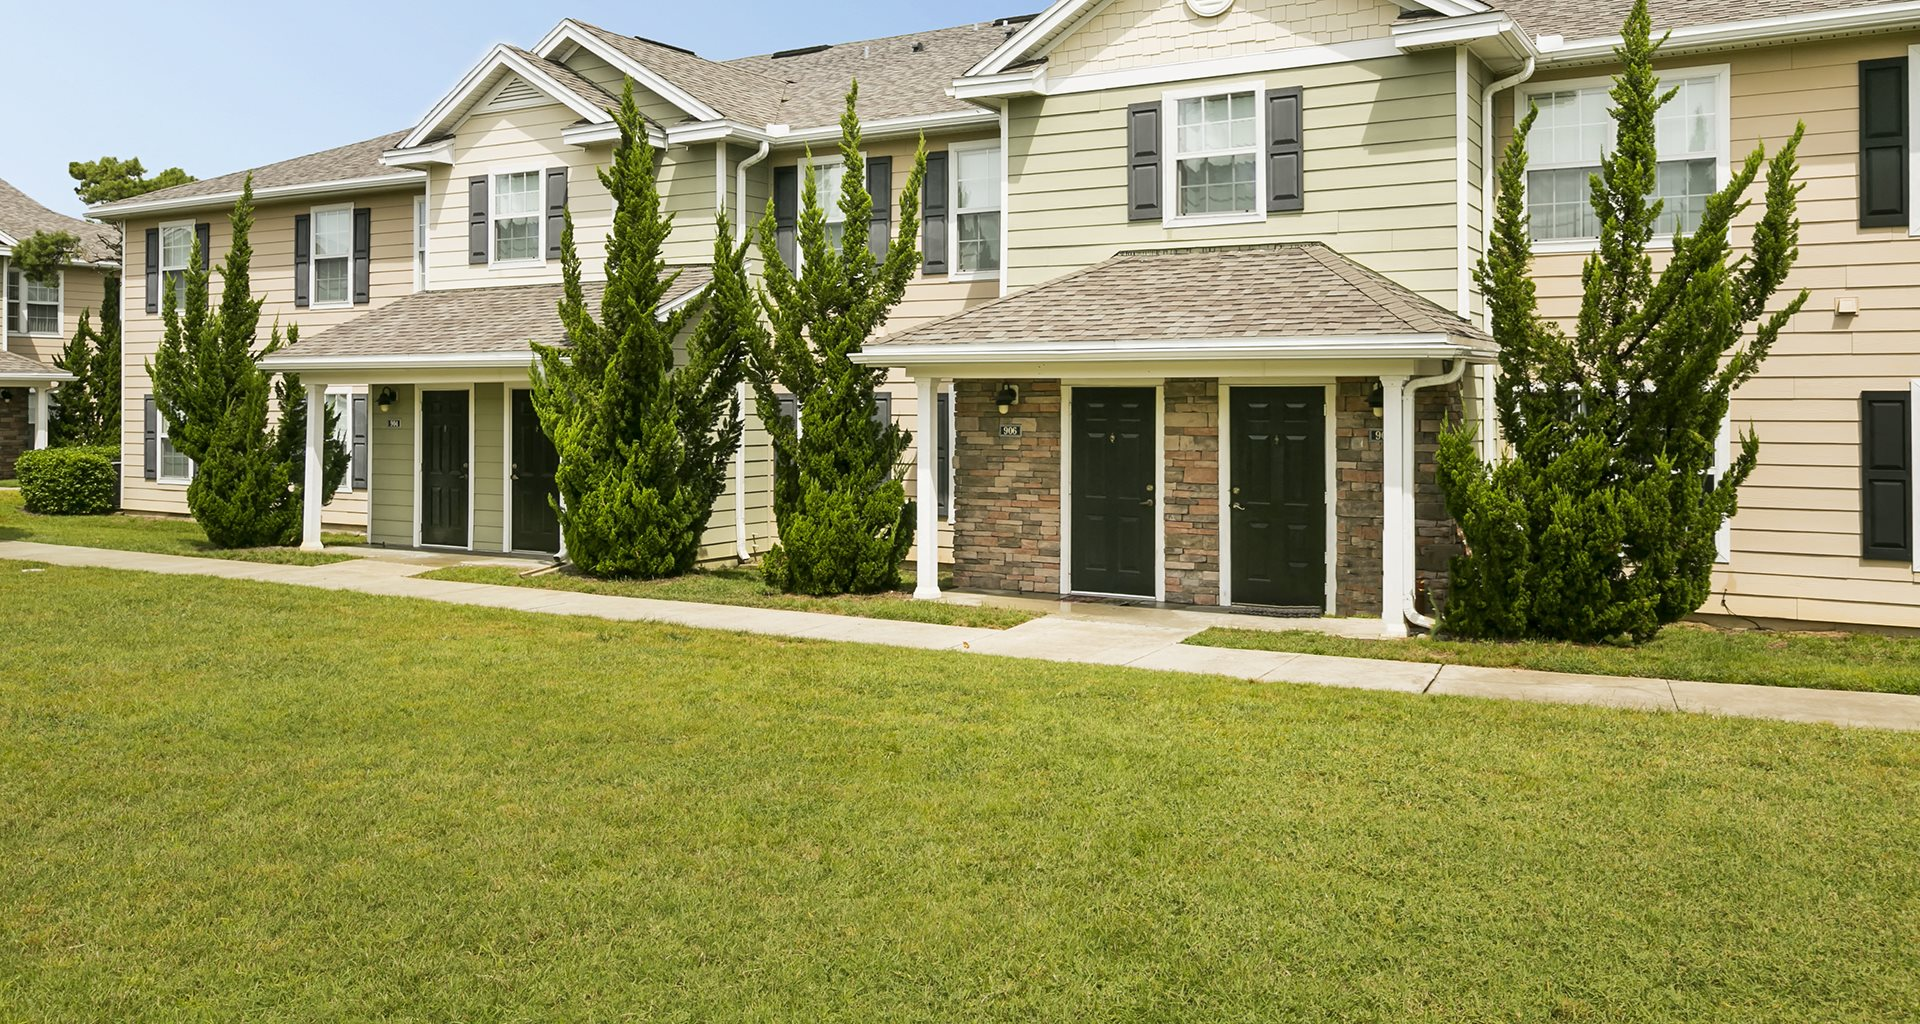 Nautilus Cove Iniums For Rent In Panama City Beach Fl Make This Community Your